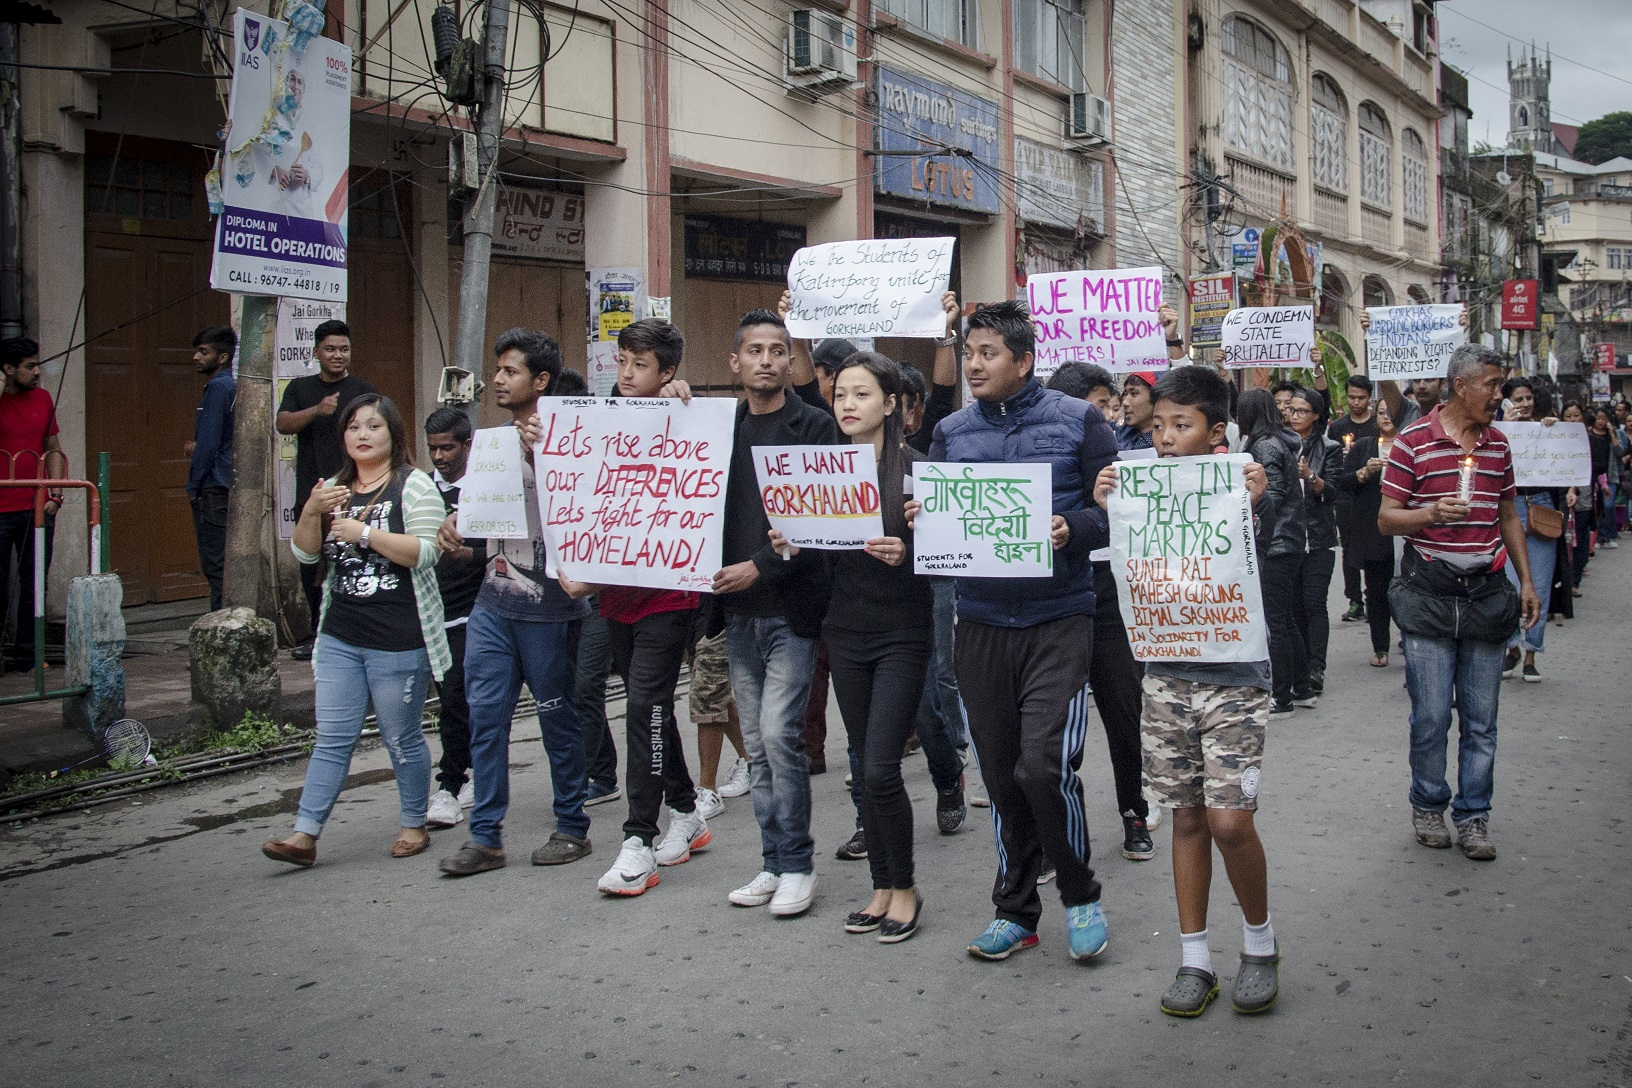 A march held by students on Tuesday. Photo: Brihat Rai